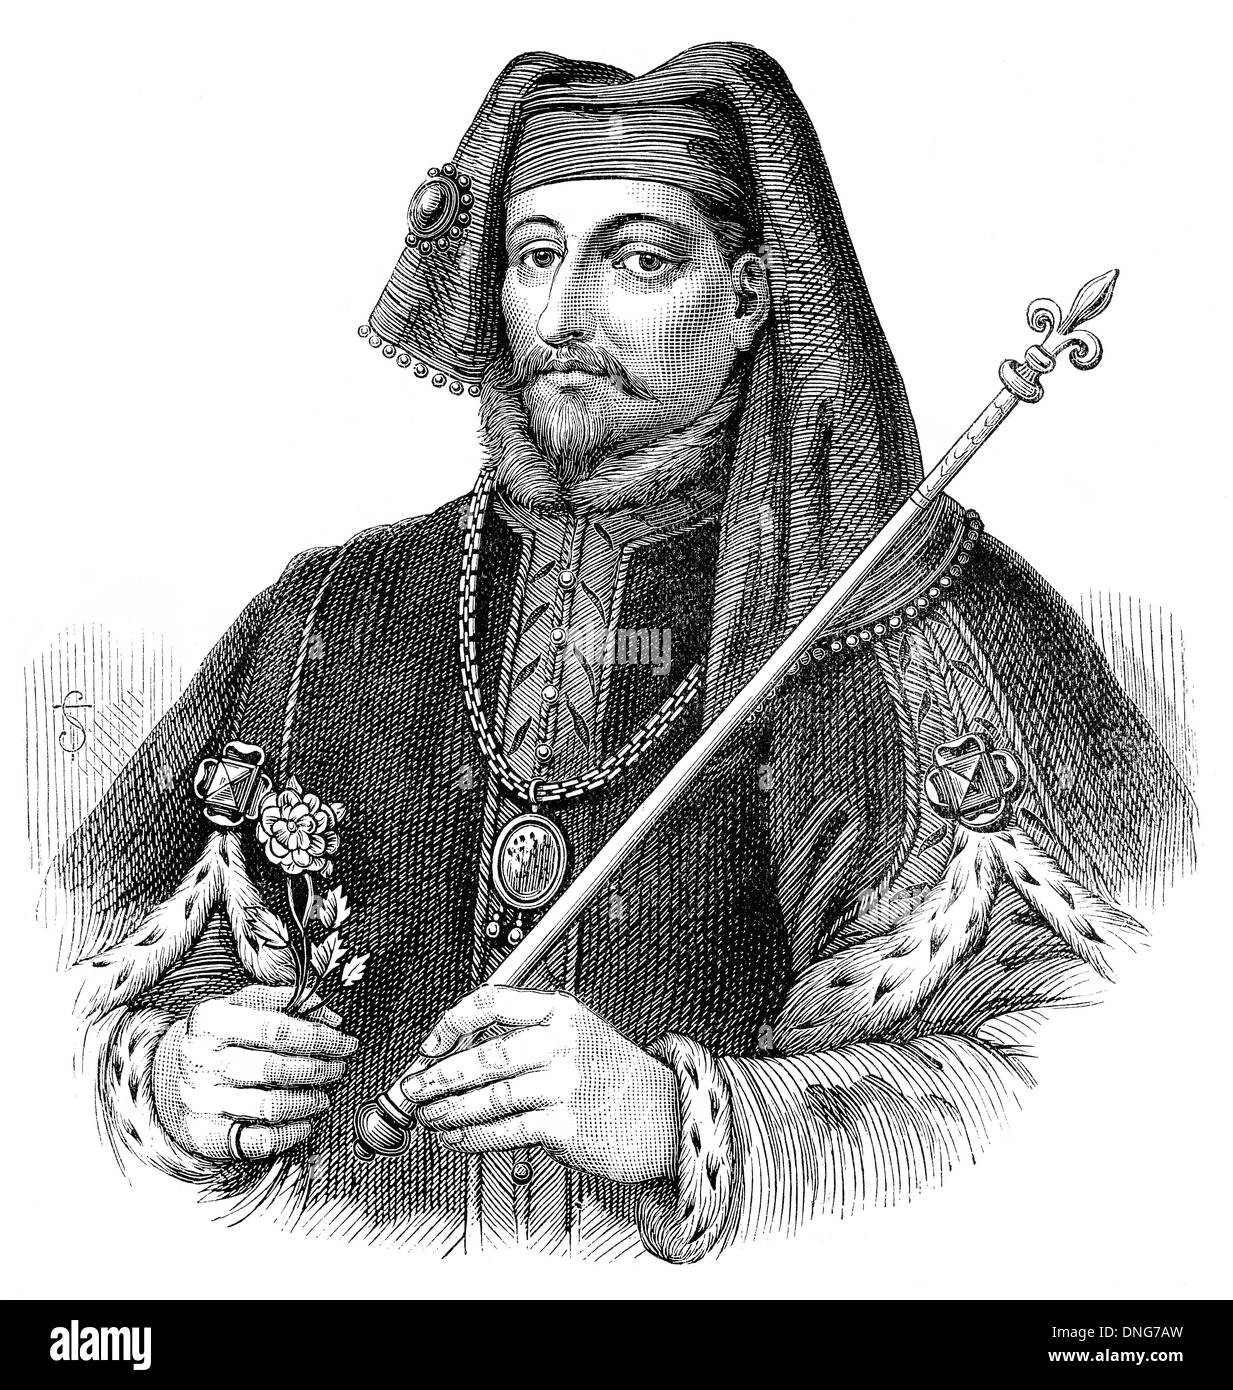 Henry IV or Henry of Bolingbroke, 1367 - 1413, King of England and Lord of Ireland - Stock Image